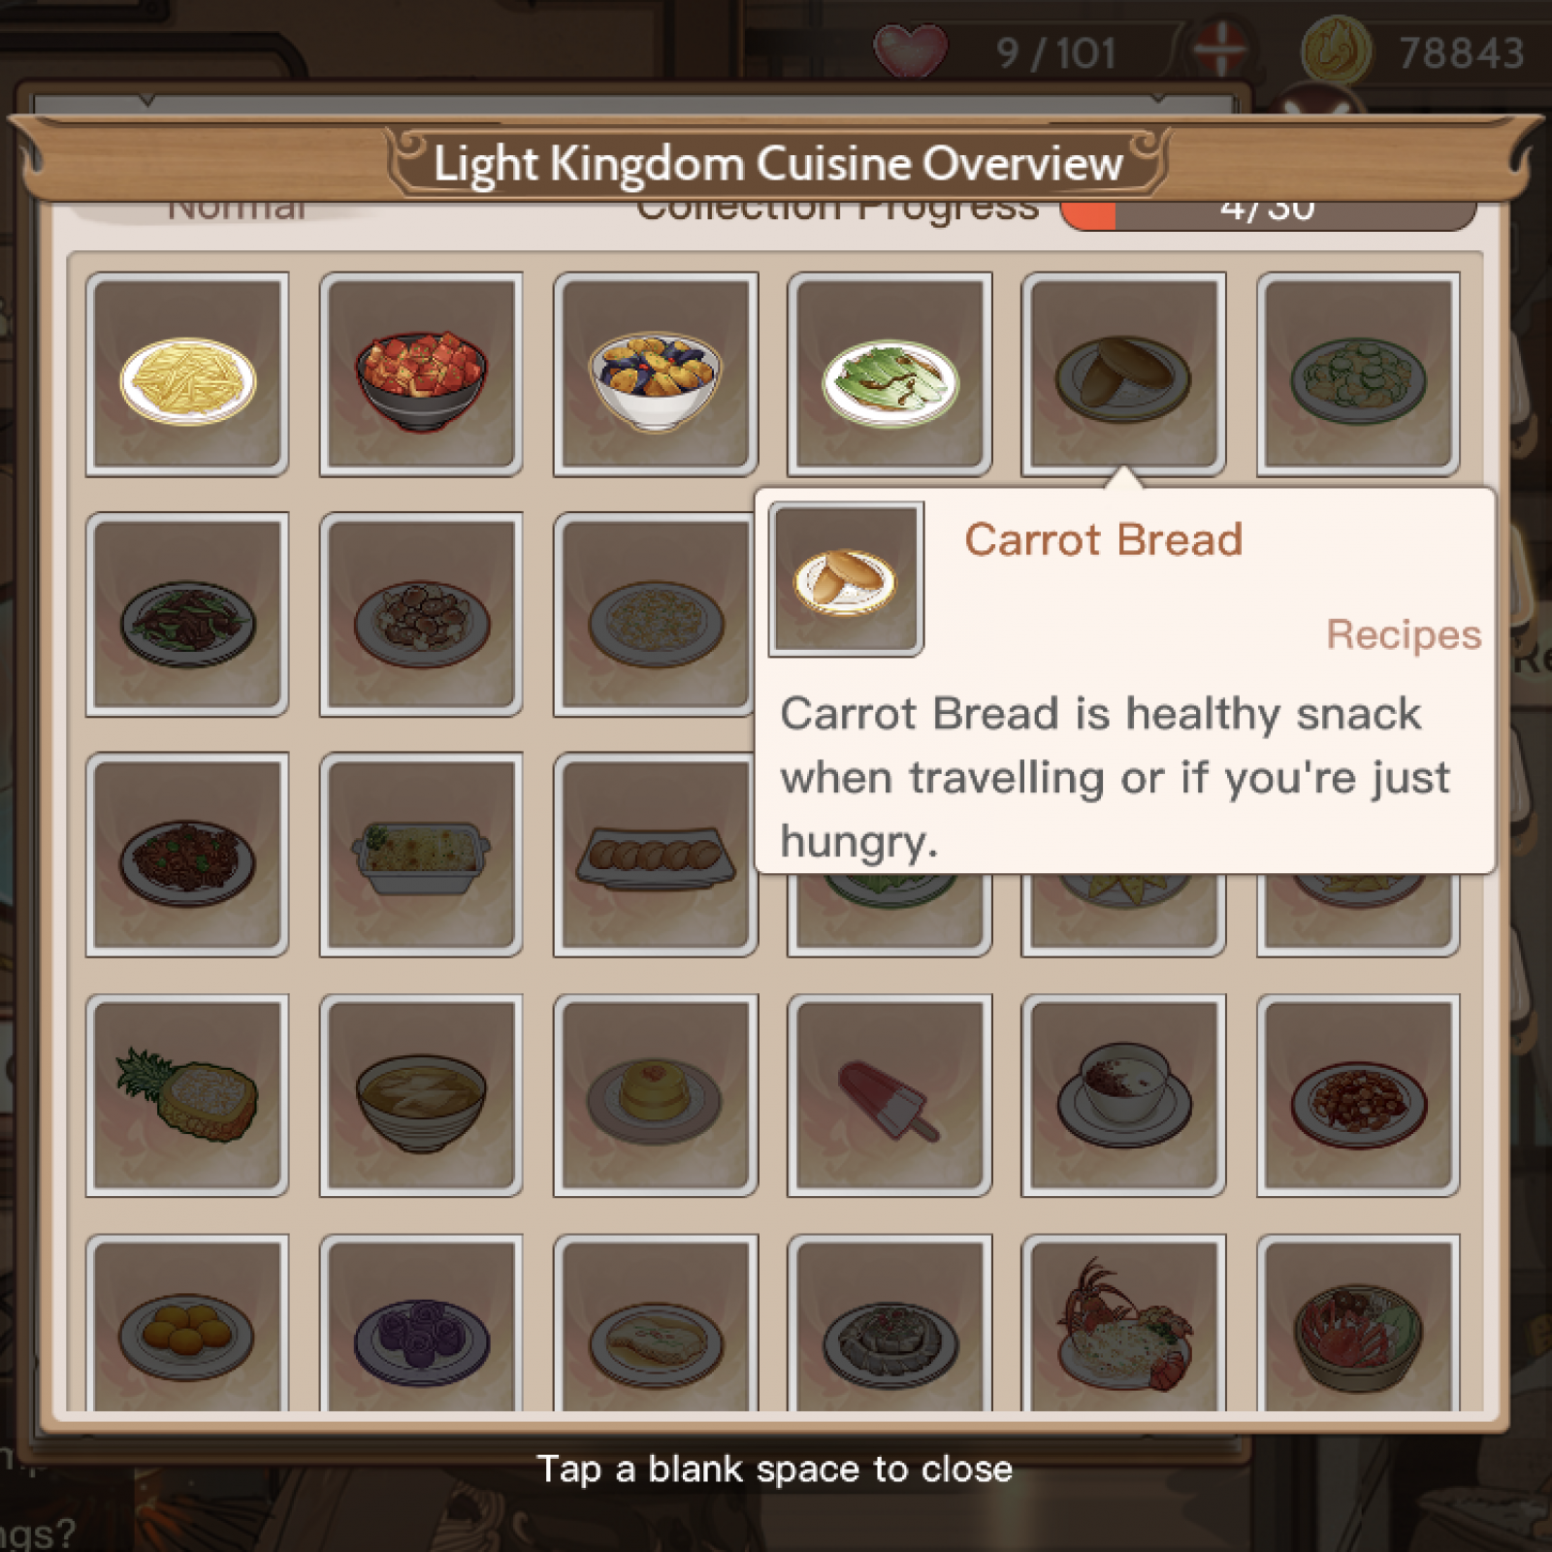 Food Fantasy' Recipes Guide: Complete List Of Dishes And ..